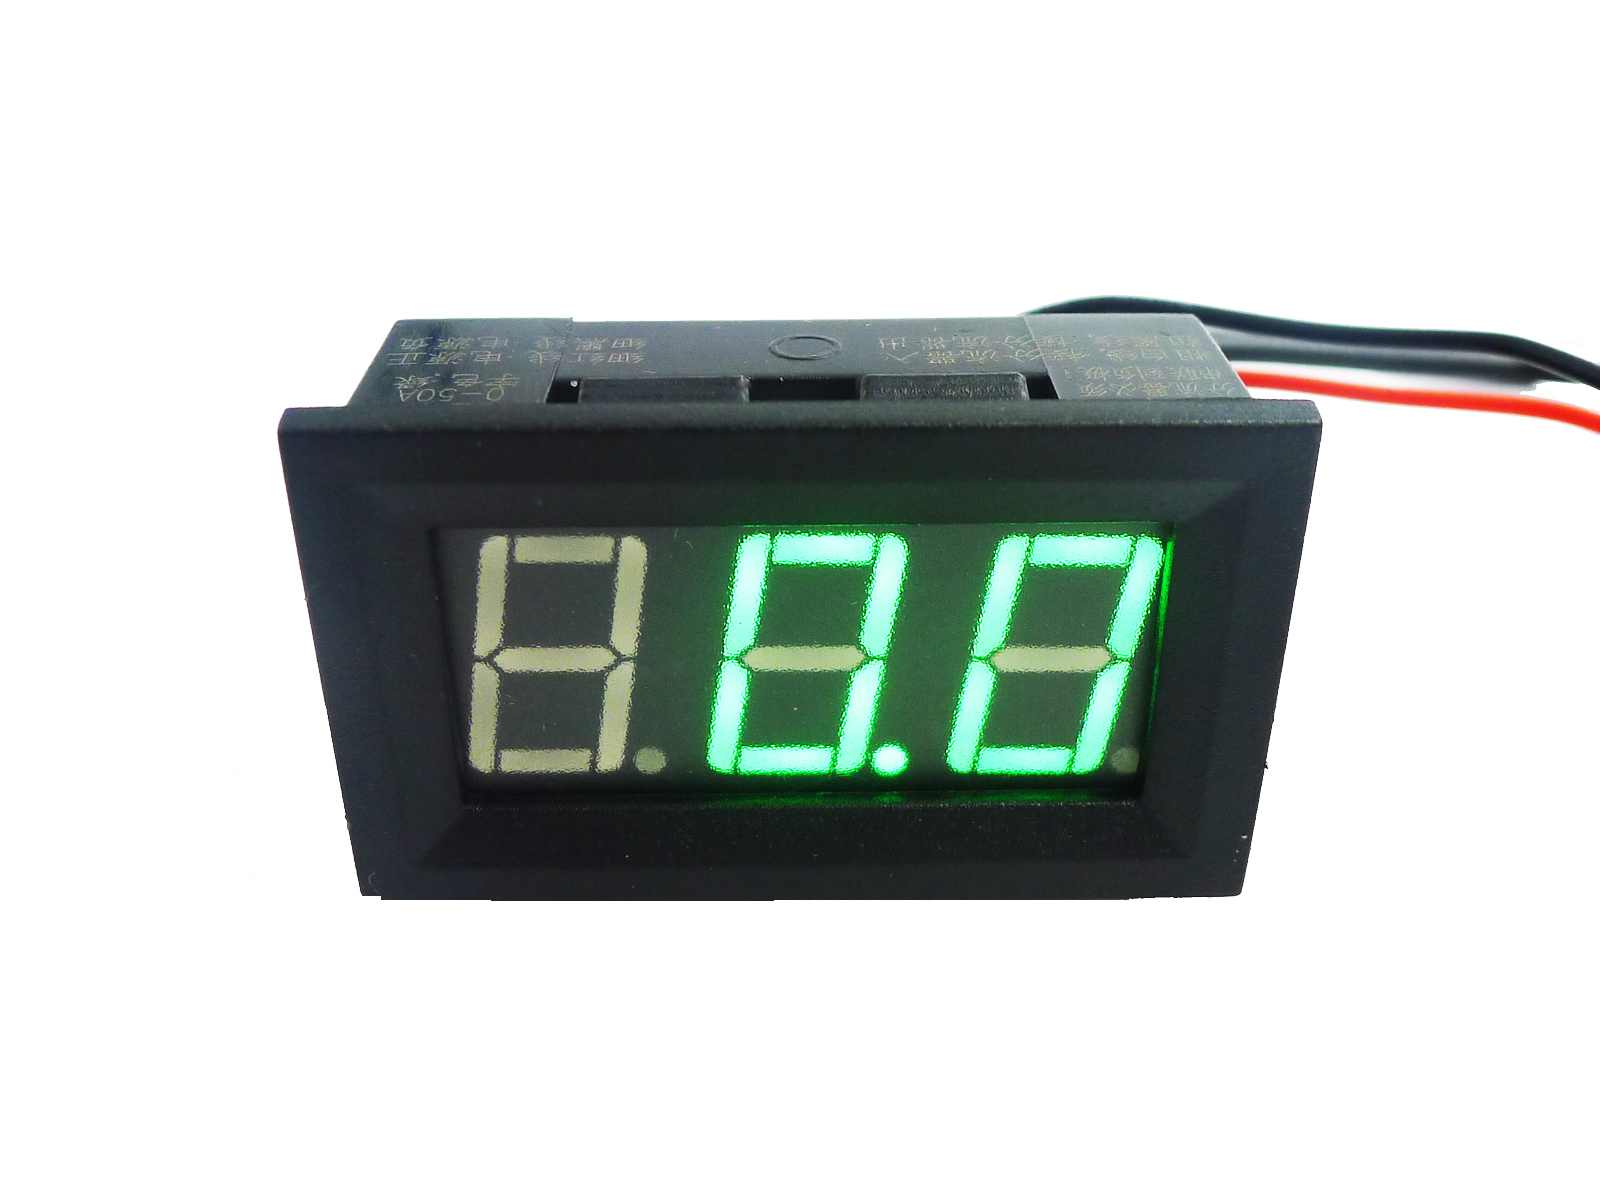 Digital Amp Meter Panel : Green led digital panel amp meter gauge 0 50a & shunt 751195416670